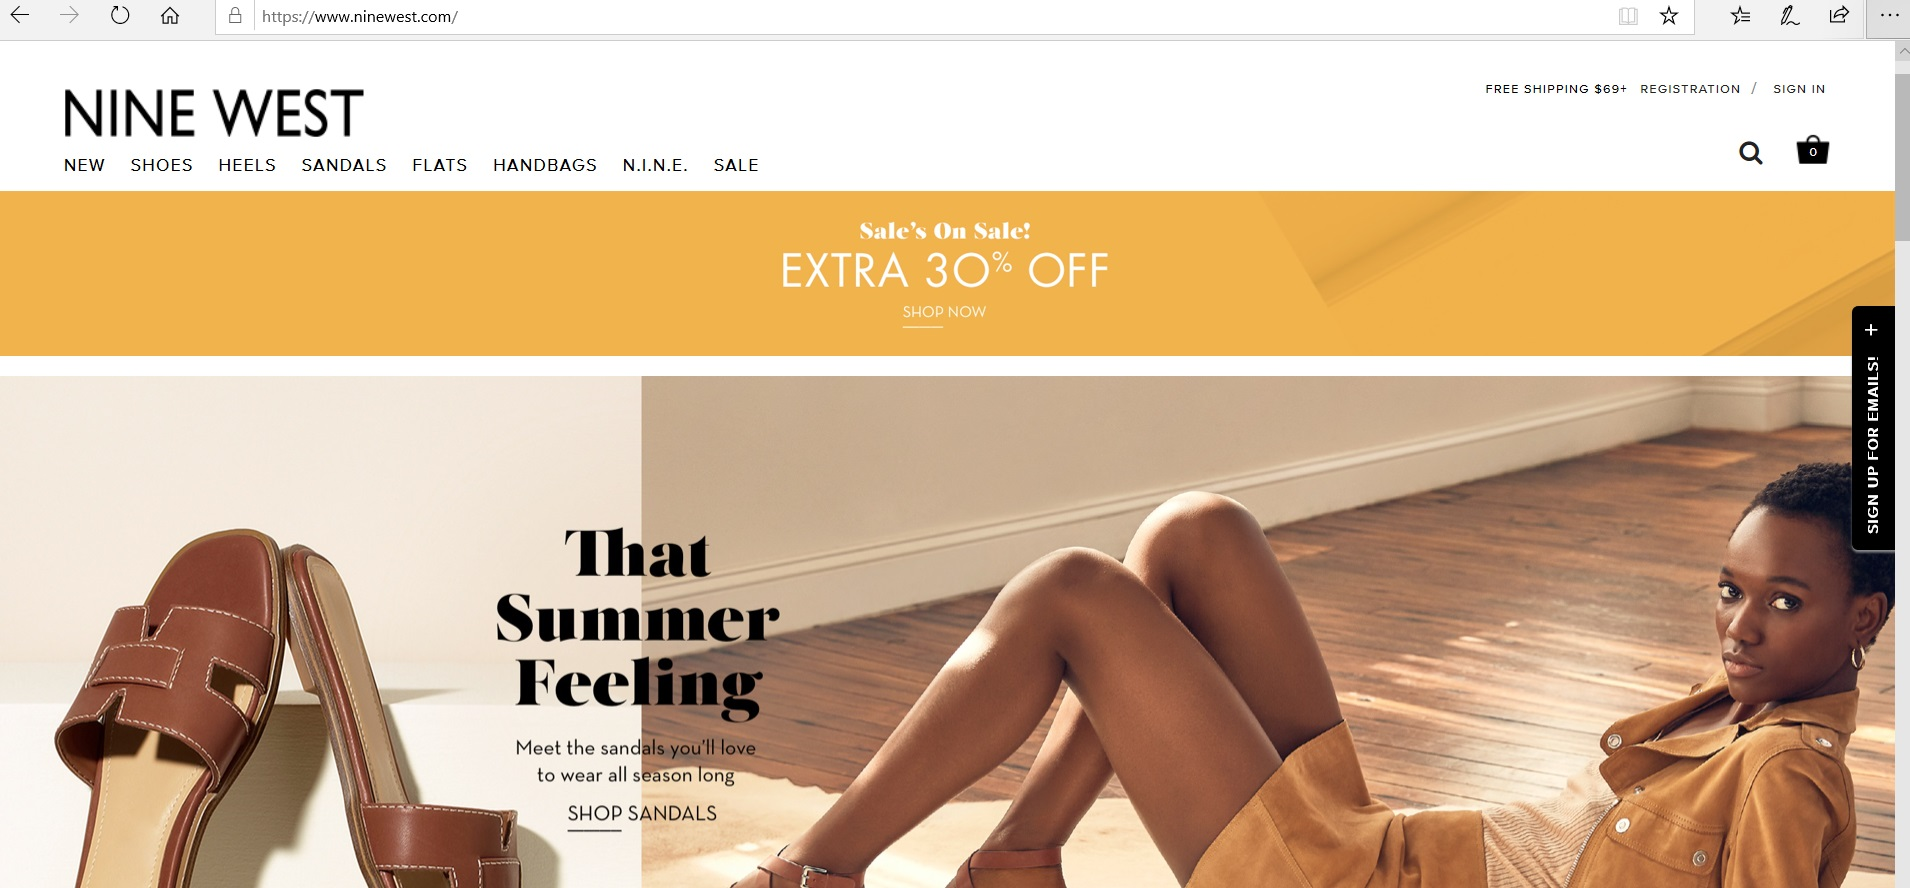 Nine West website homepage with product categories.